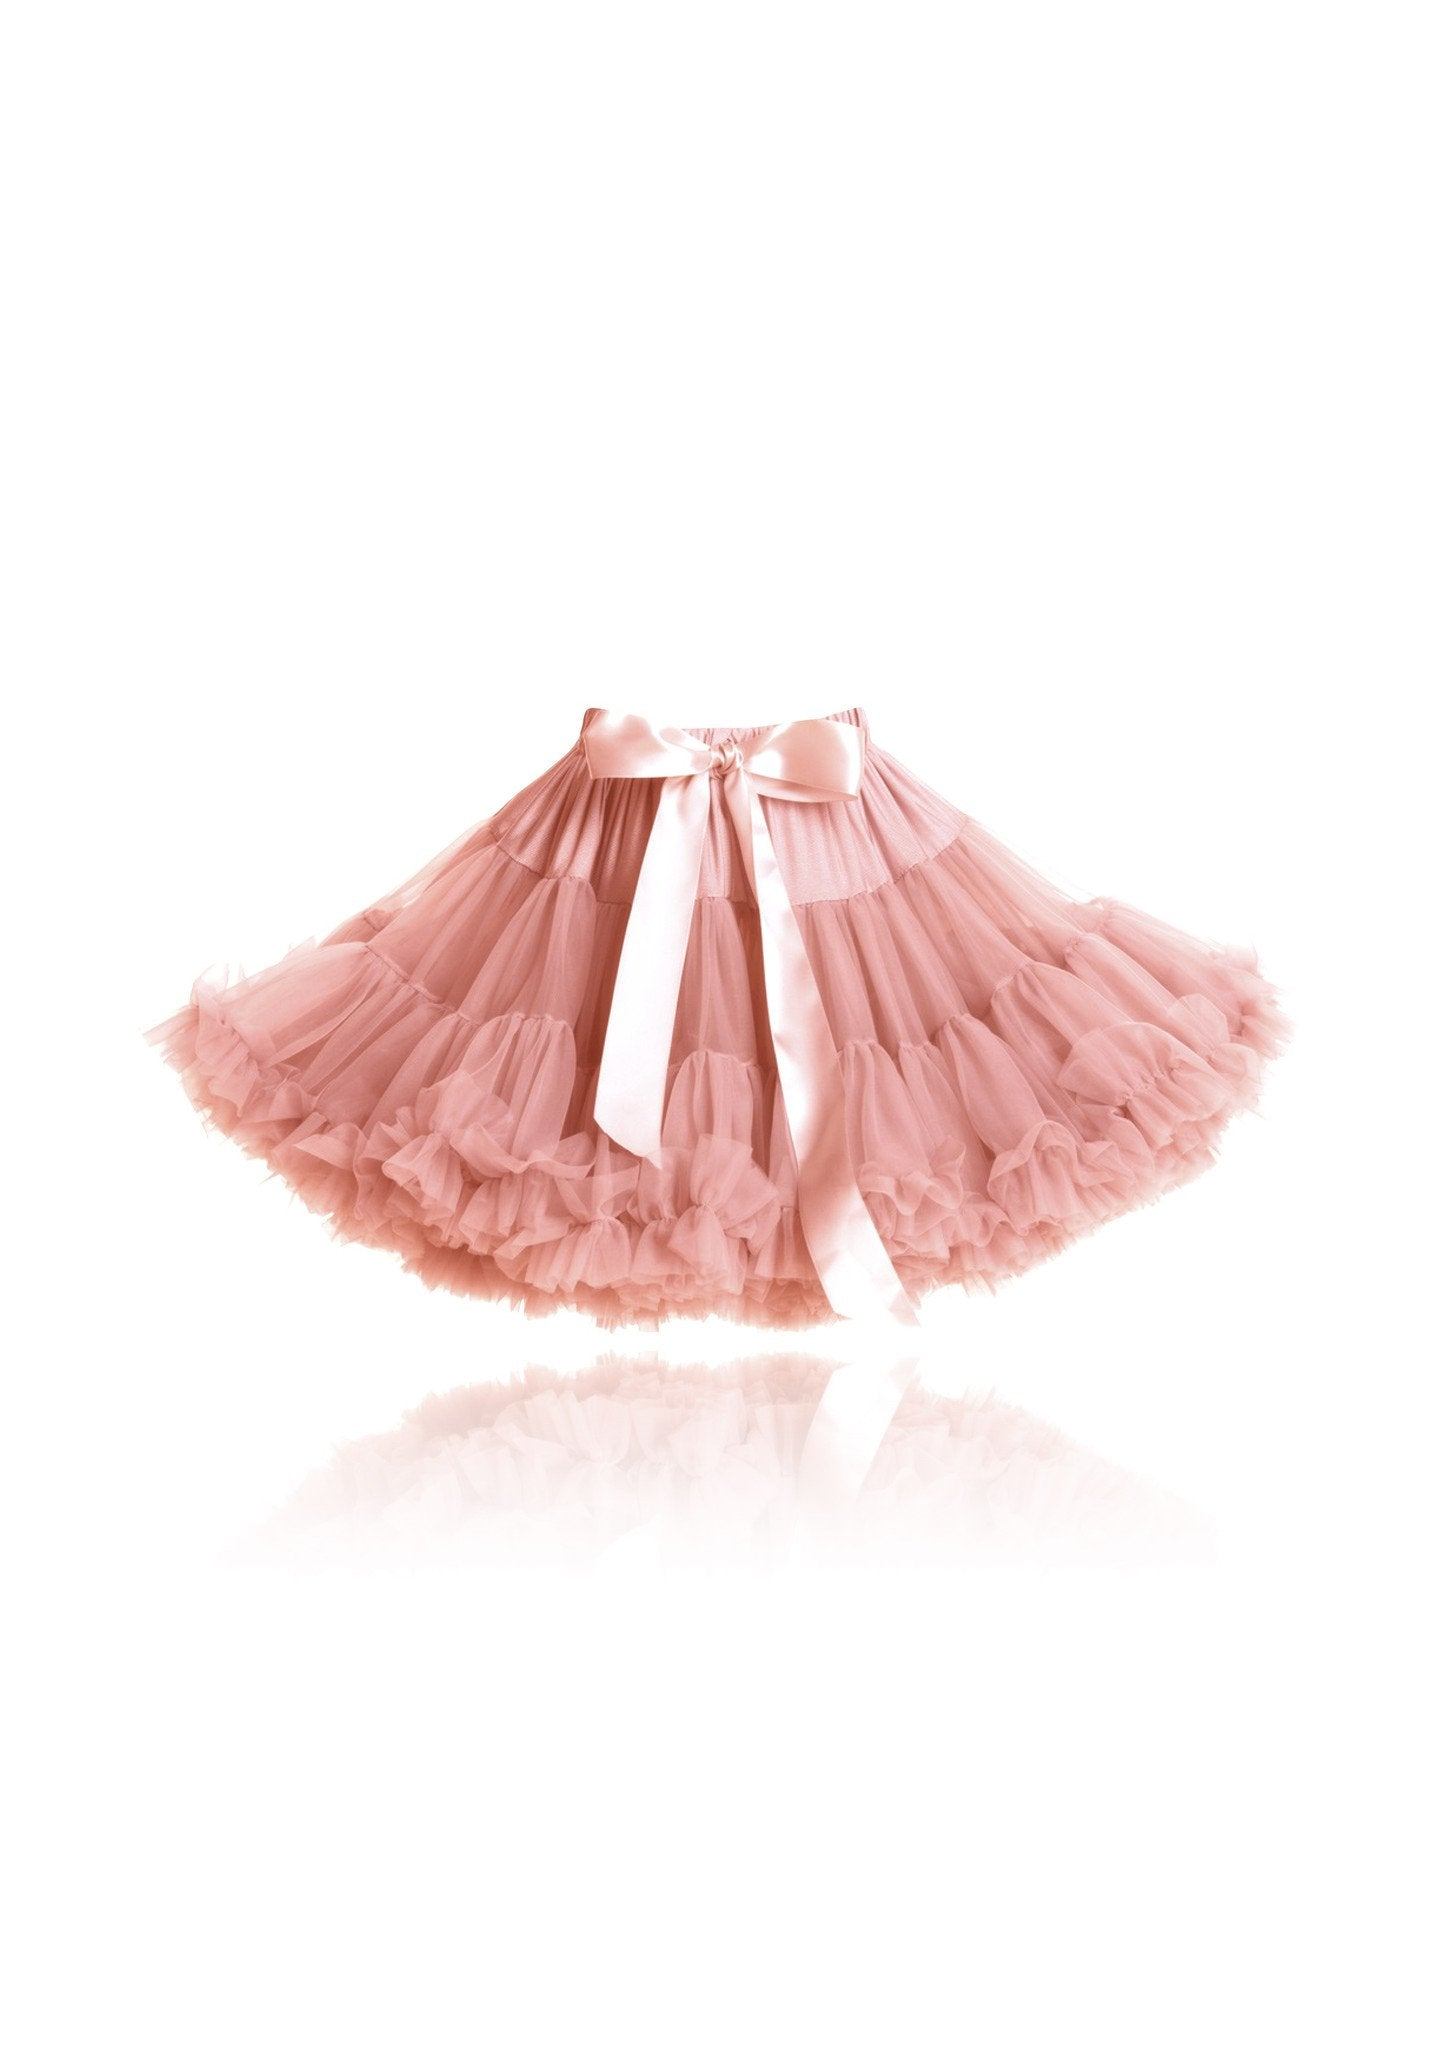 DOLLY by Le Petit Tom ® QUEEN OF FAIRIES pettiskirt coral - DOLLY by Le Petit Tom ®